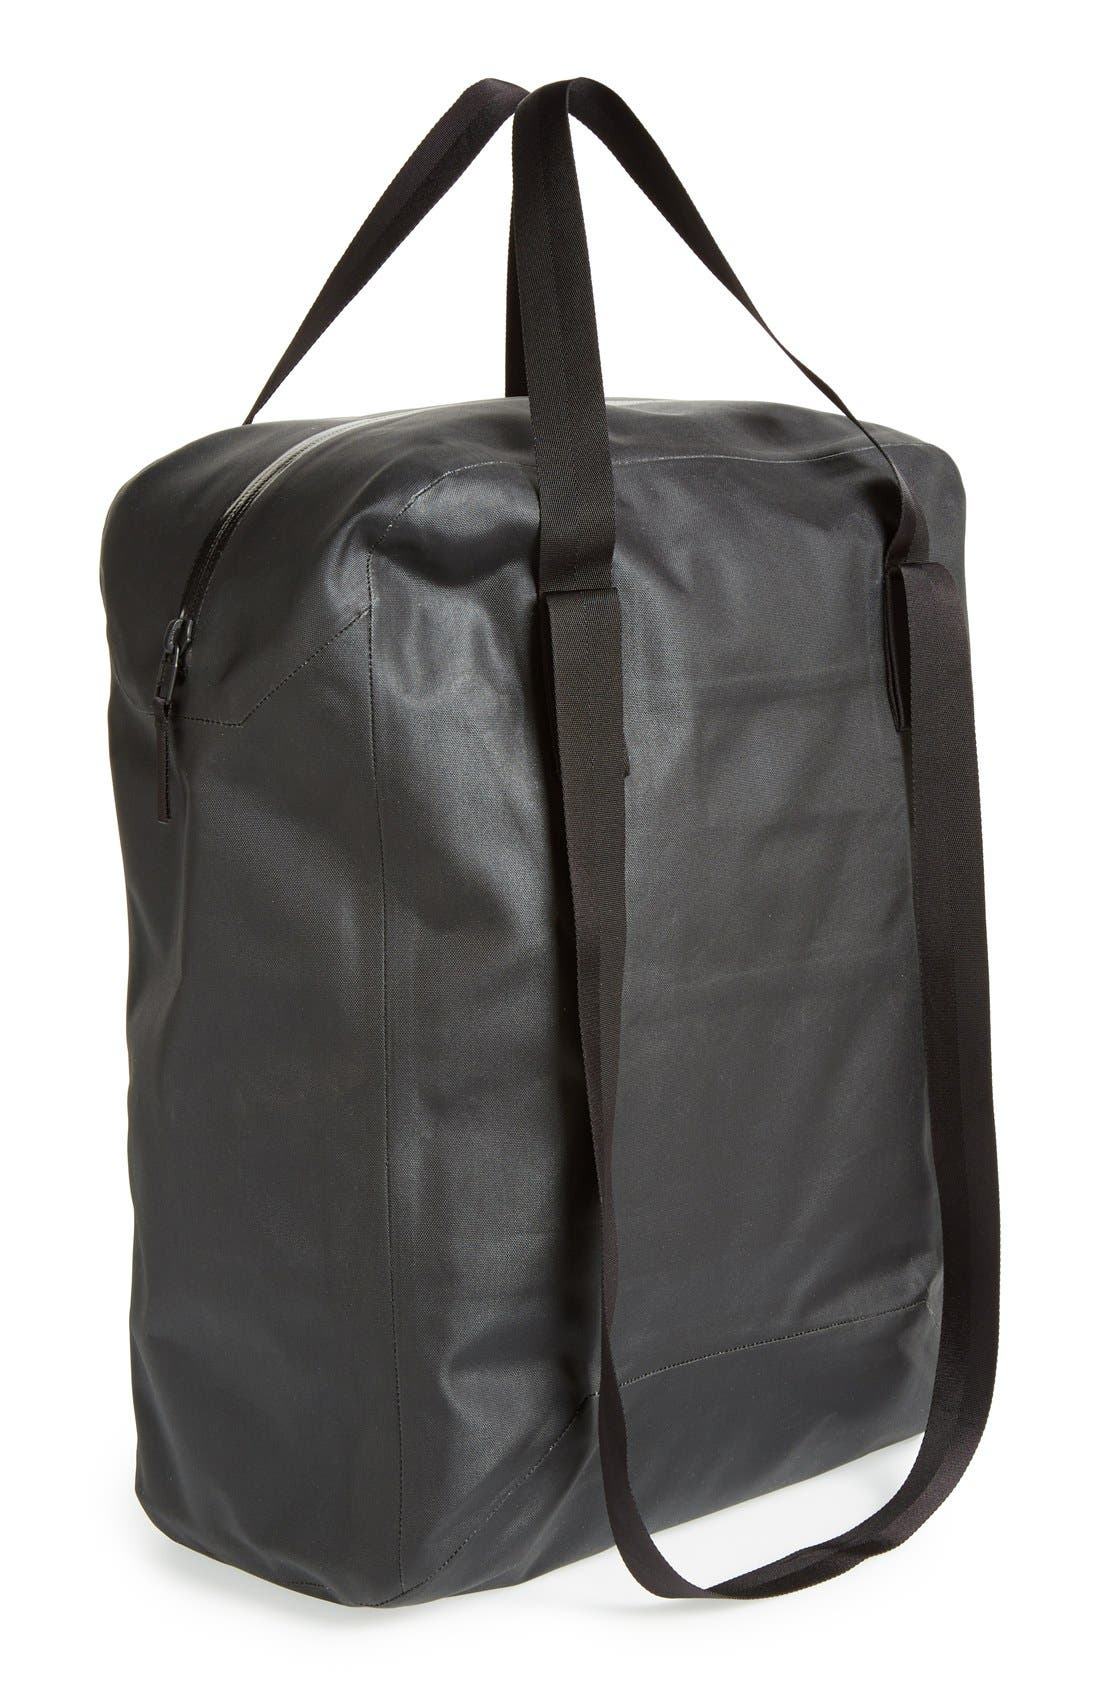 'Seque' Water Resistant Nylon Tote,                             Main thumbnail 1, color,                             001